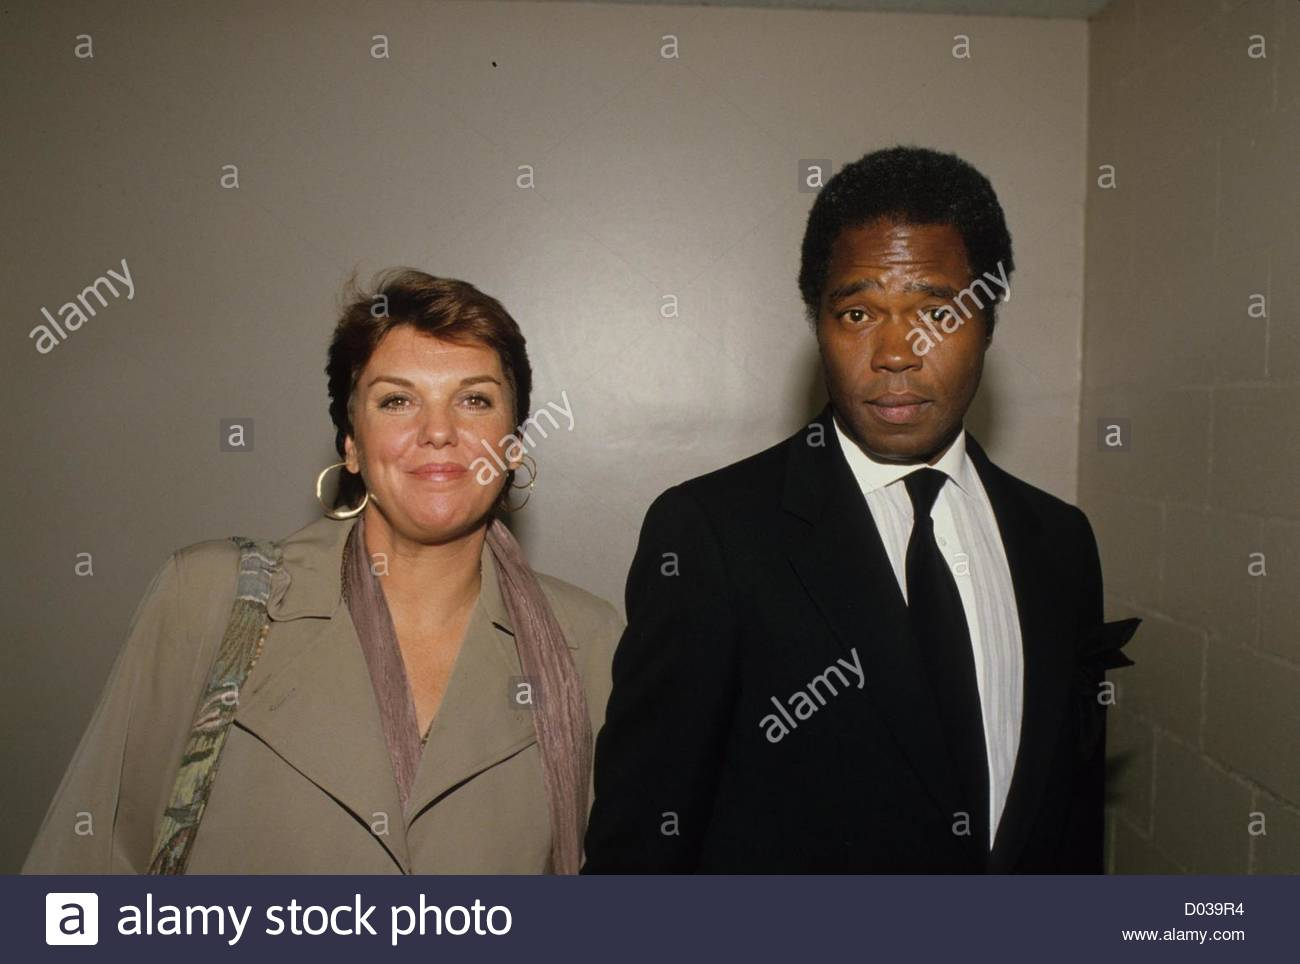 Georg Stanford Brown today